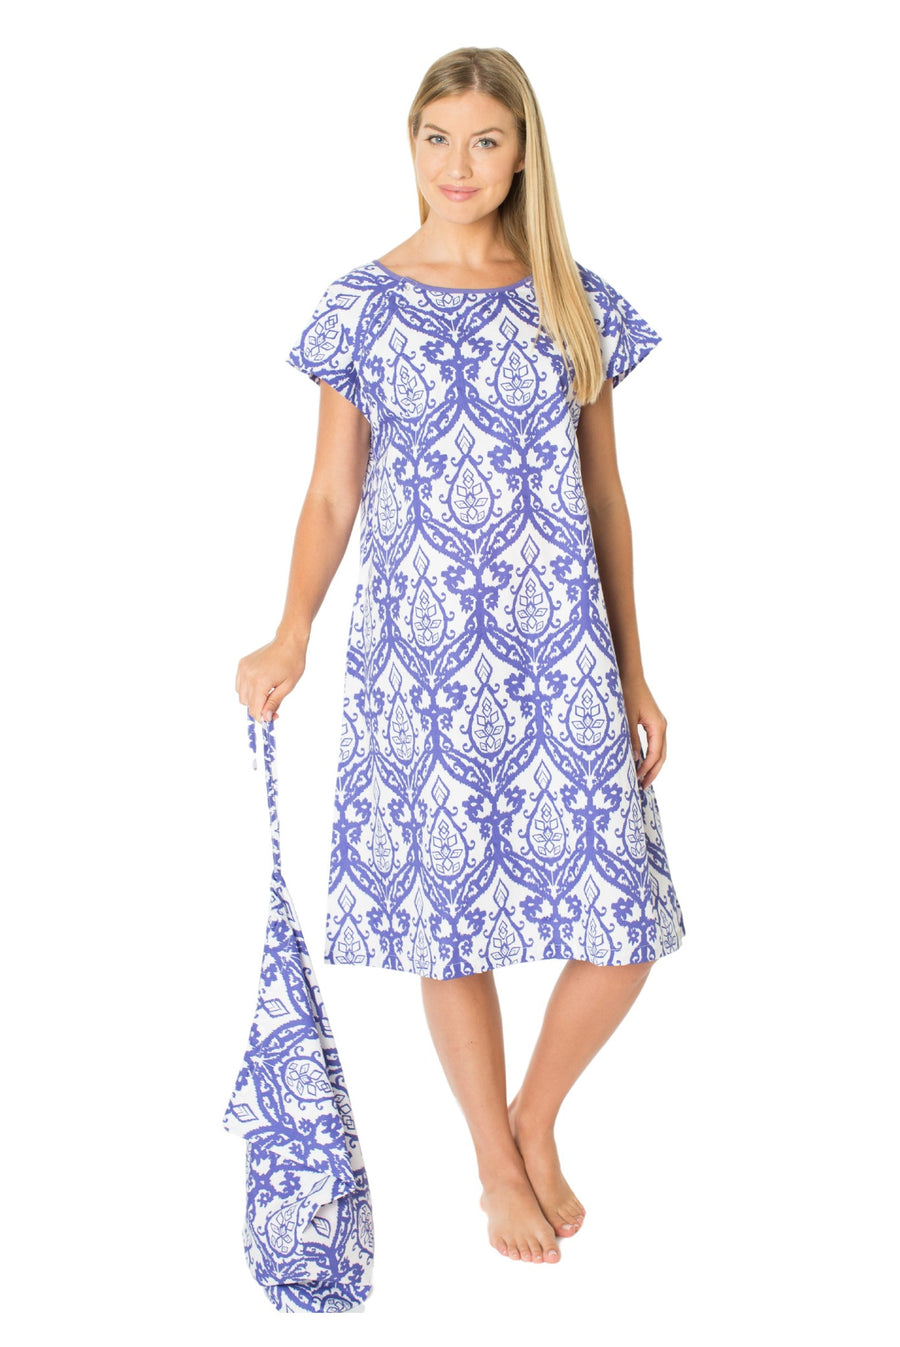 Brie Gownie Labor/ Delivery Hospital Gown & Matching Laundry Bag Set ...